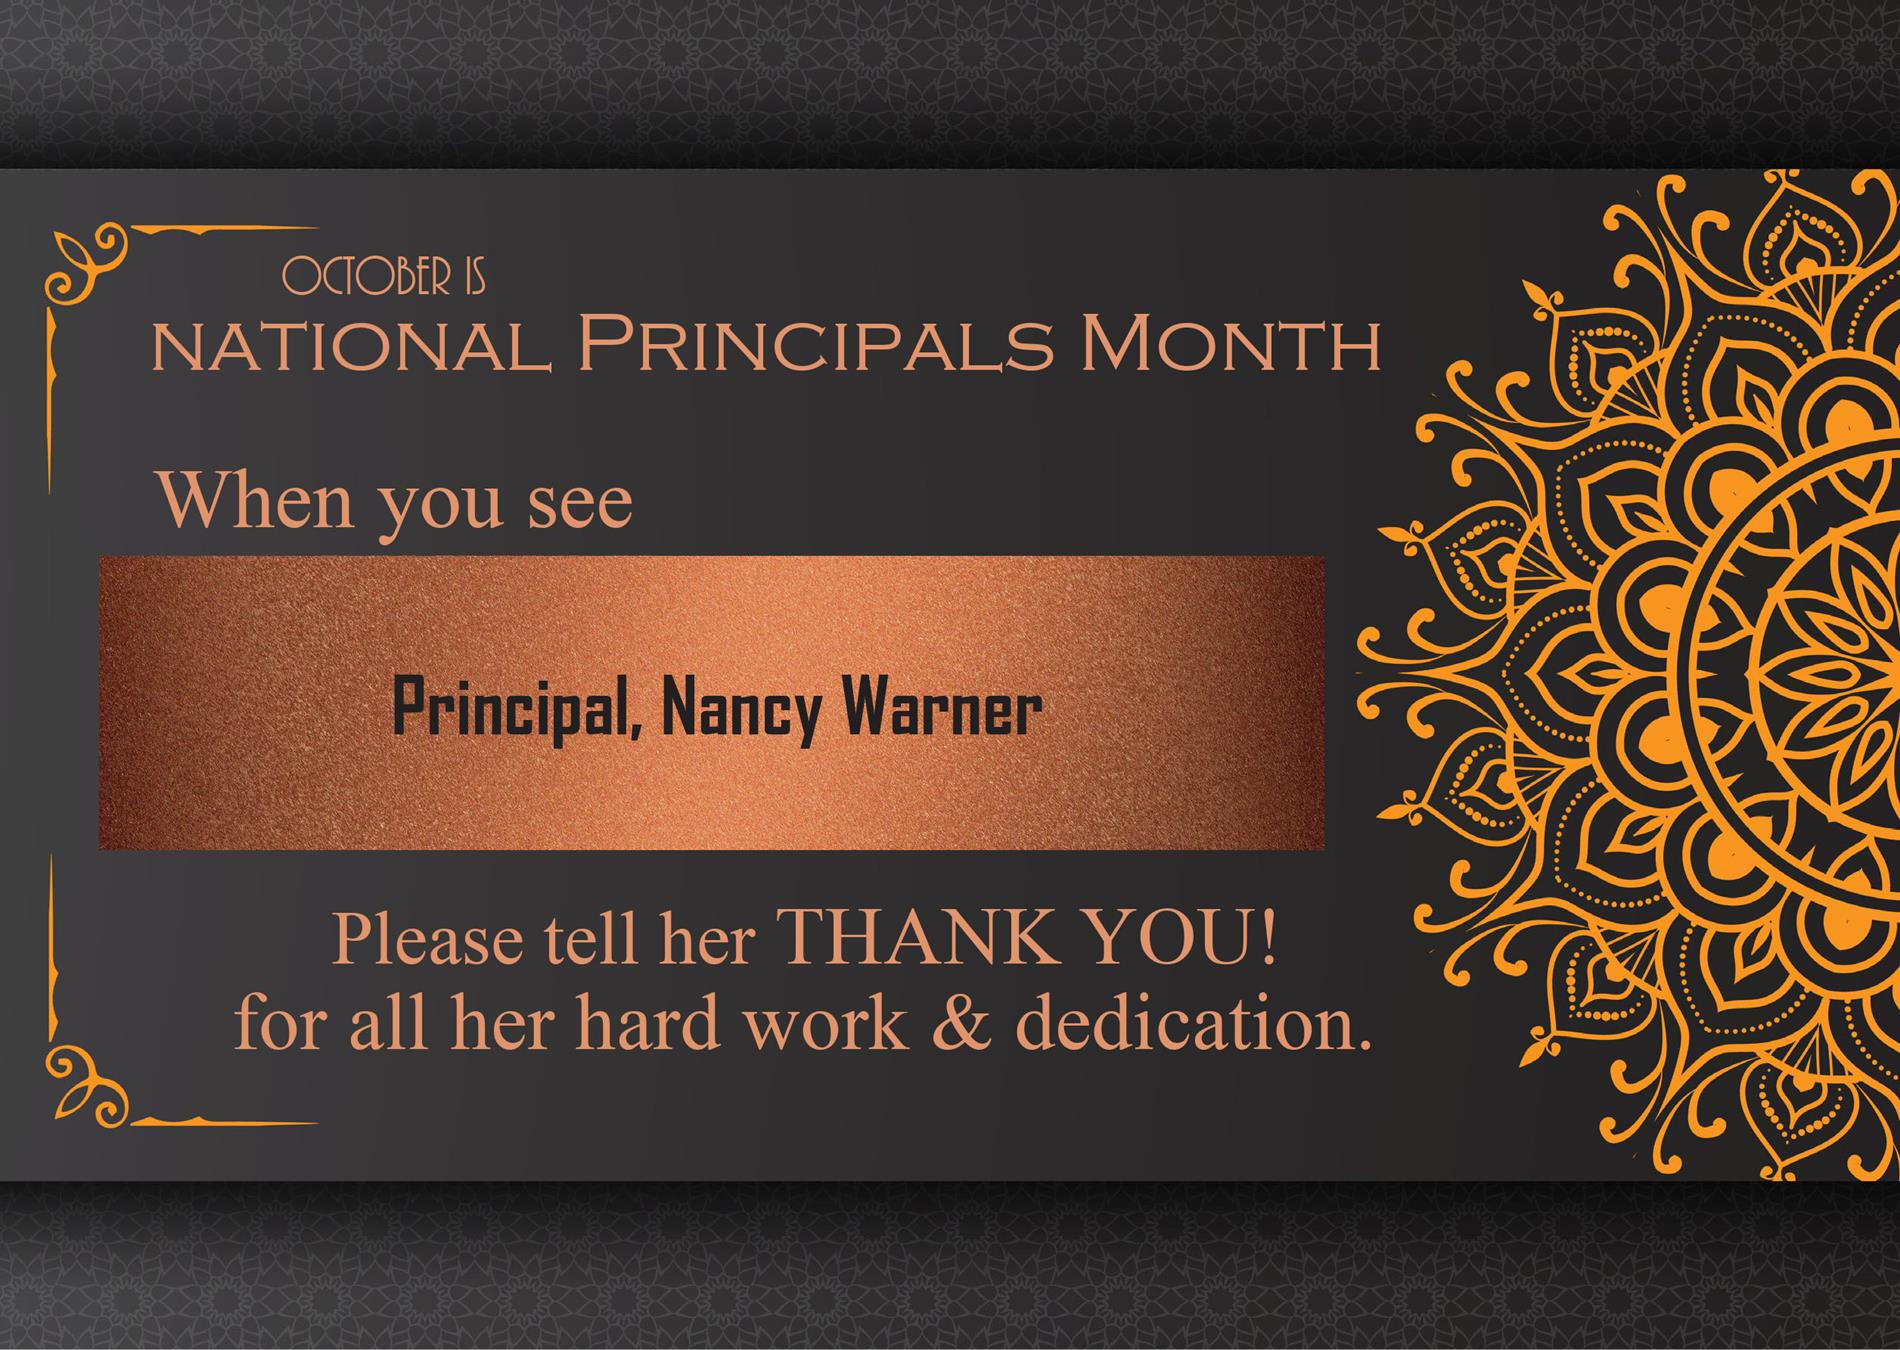 A graphic thanking Nancy Walker for her dedication as principal.